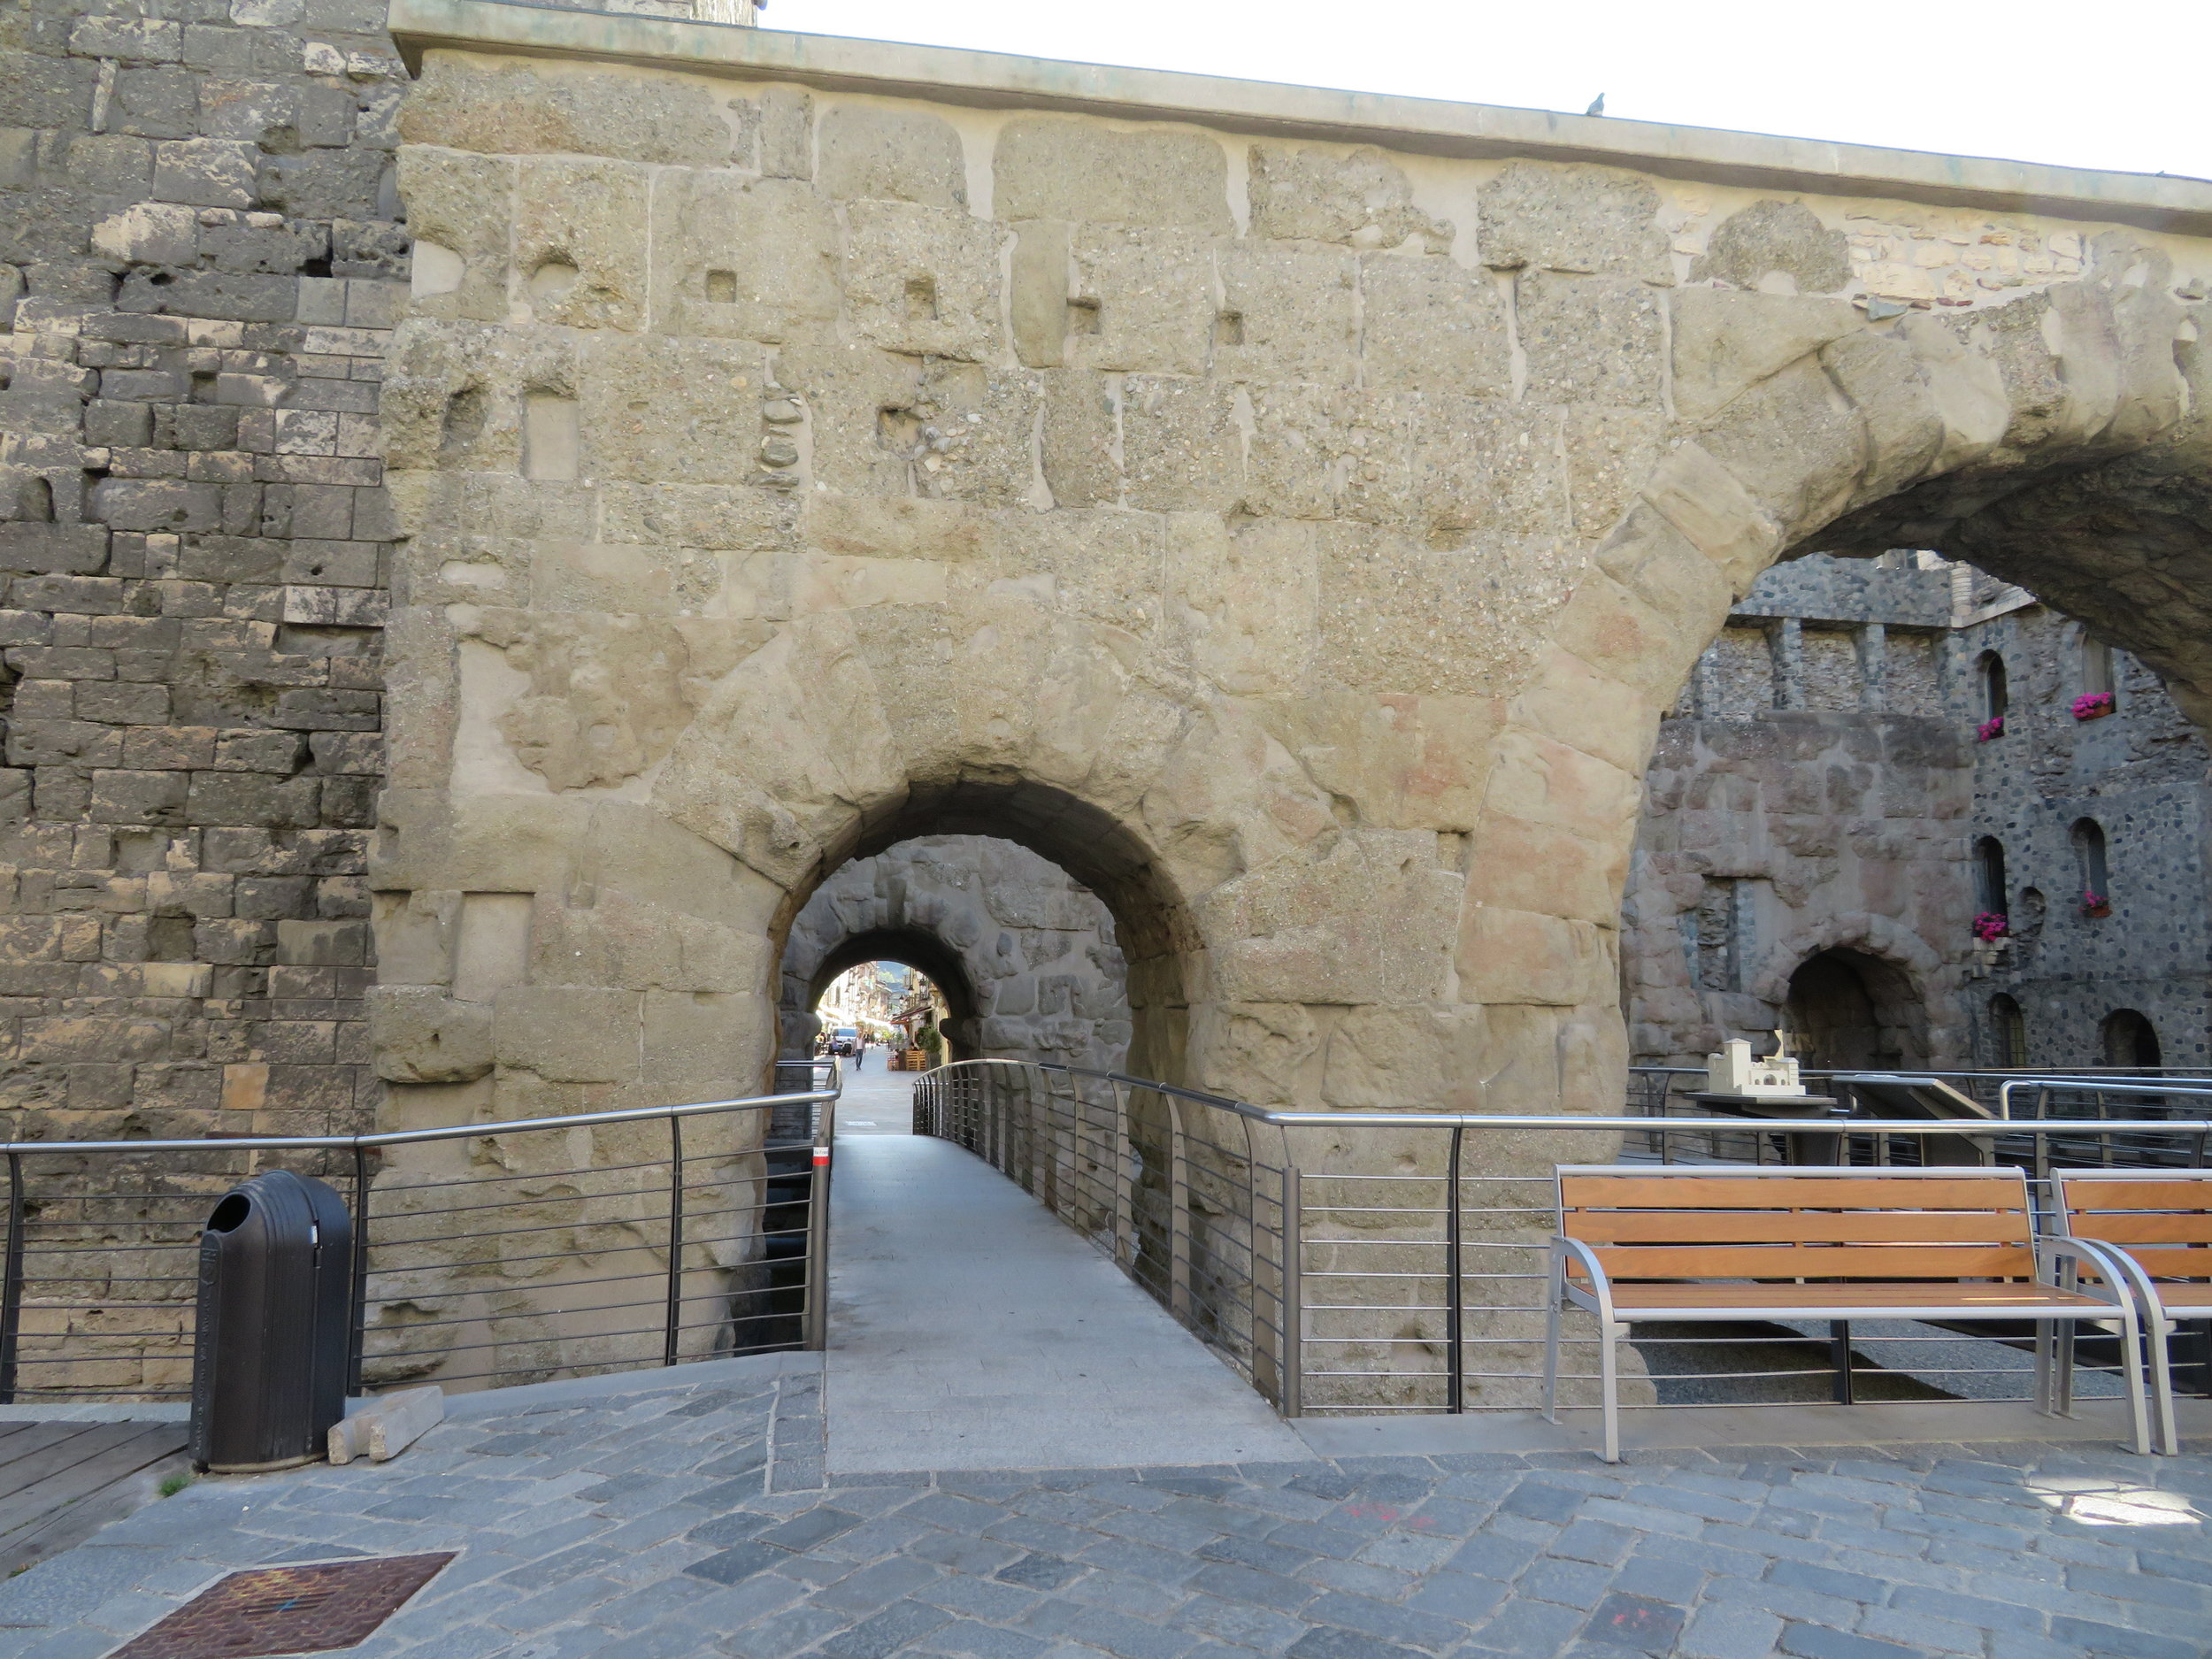 Porta Praetoria, an old 3-arched portal to the city, has two narrower arched ports for pedestrians and a wider central arched port for wagons.